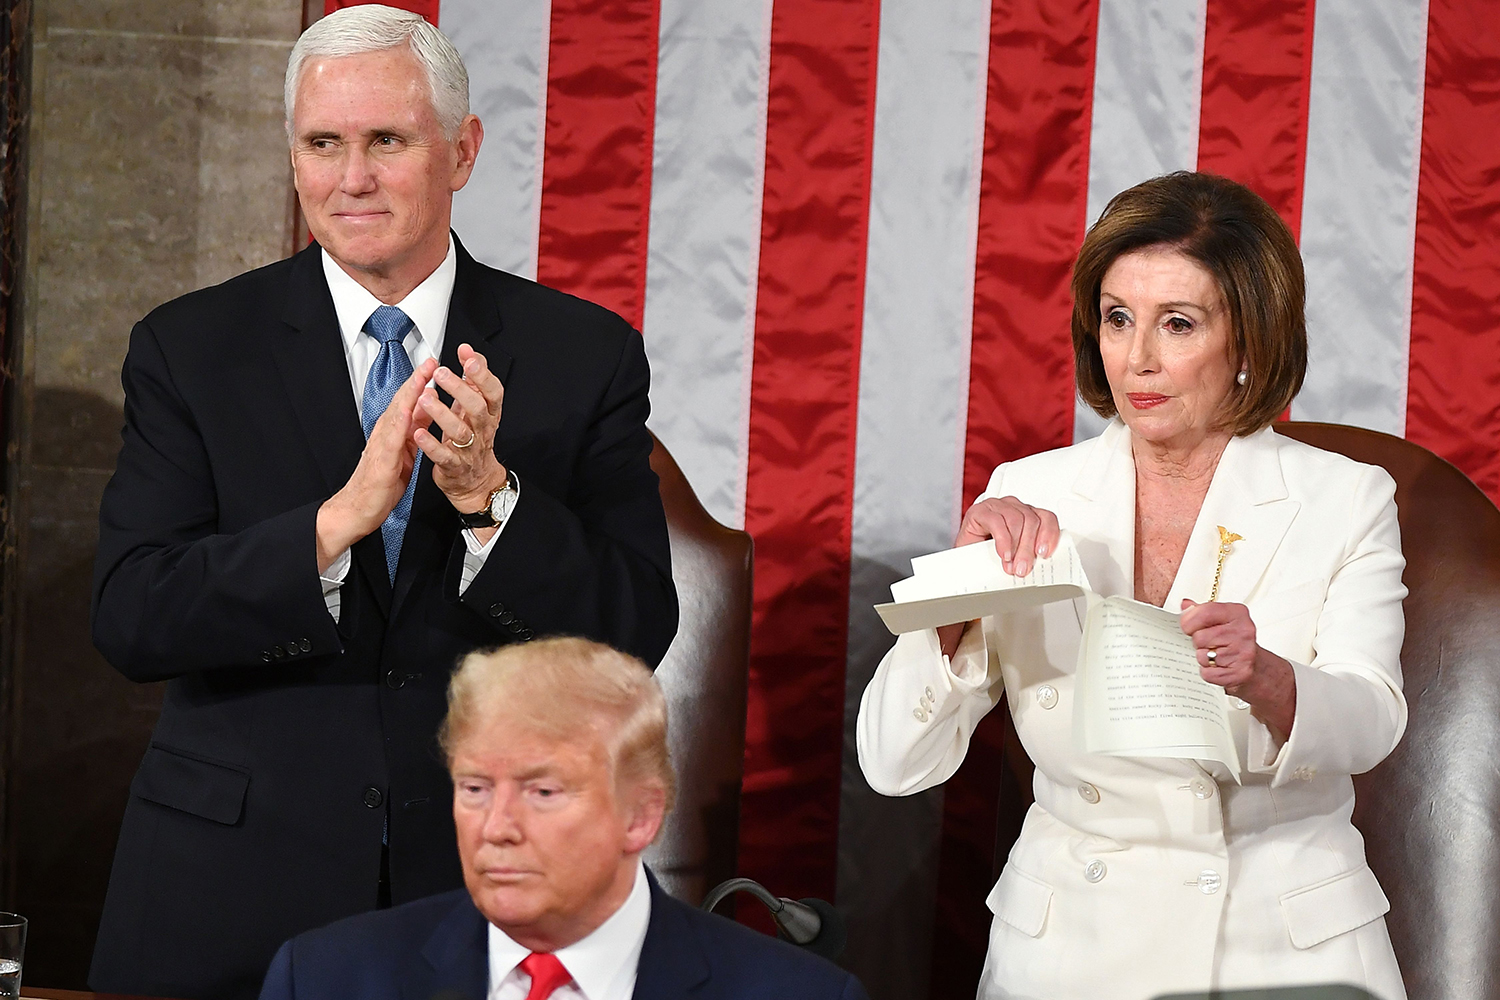 Speaker of the U.S. House of Representatives Nancy Pelosi rips a copy of U.S. President Donald Trump's speech after he delivered the State of the Union address at the Capitol in Washington on Feb. 4. MANDEL NGAN/AFP via Getty Images